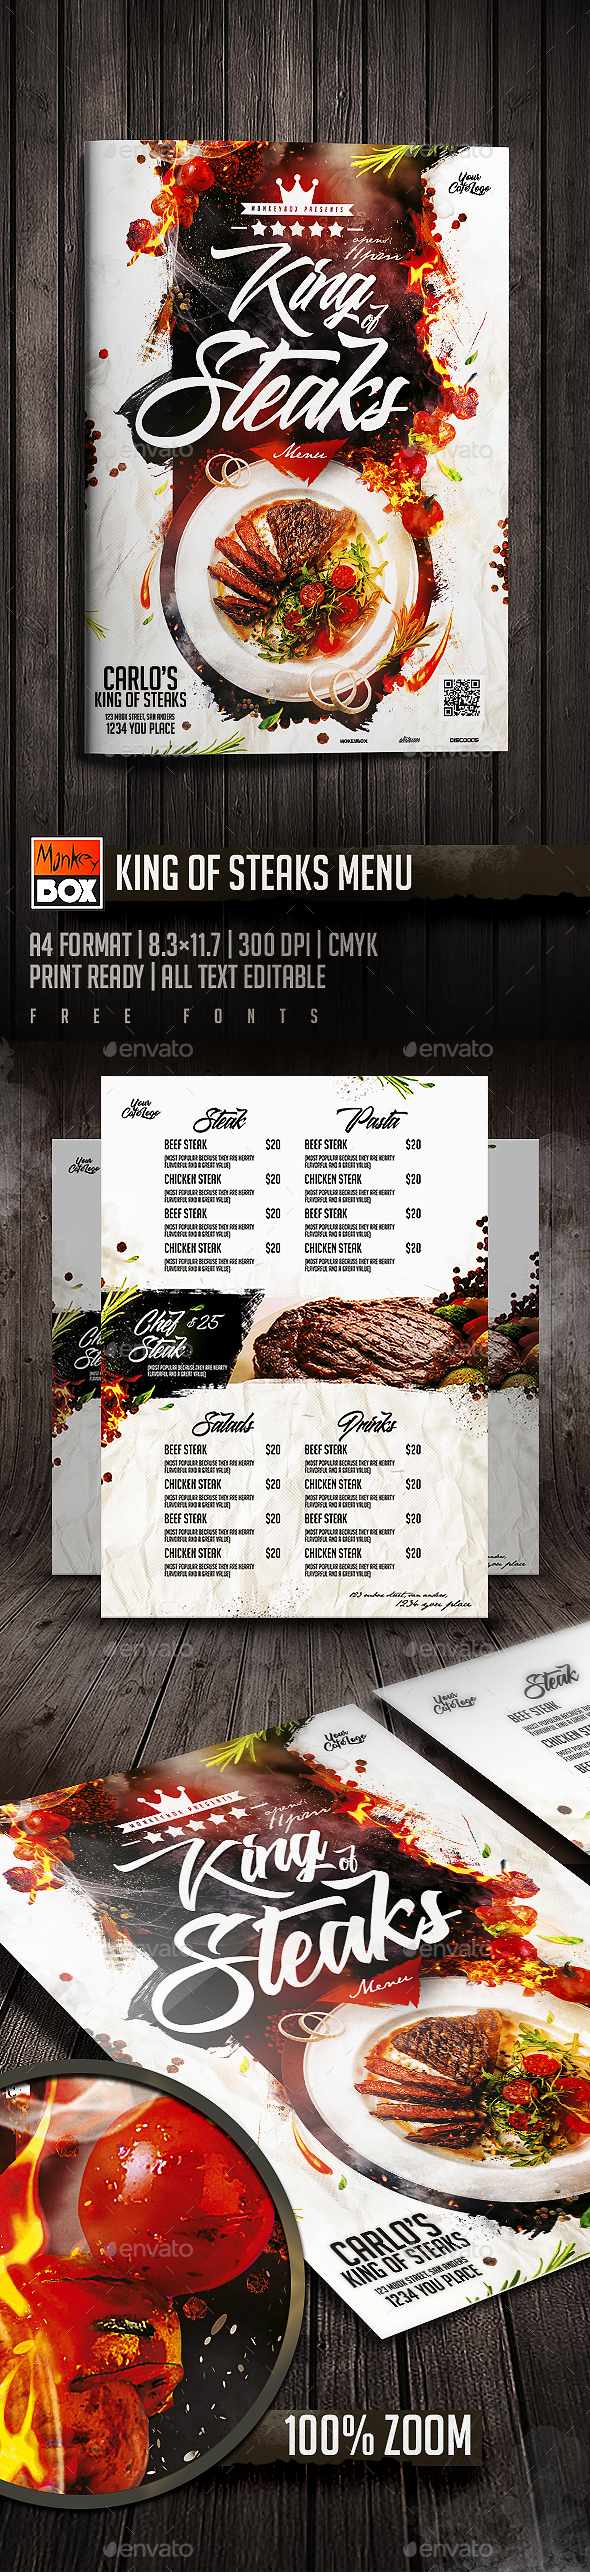 King Of Steaks Menu - Restaurant Flyers